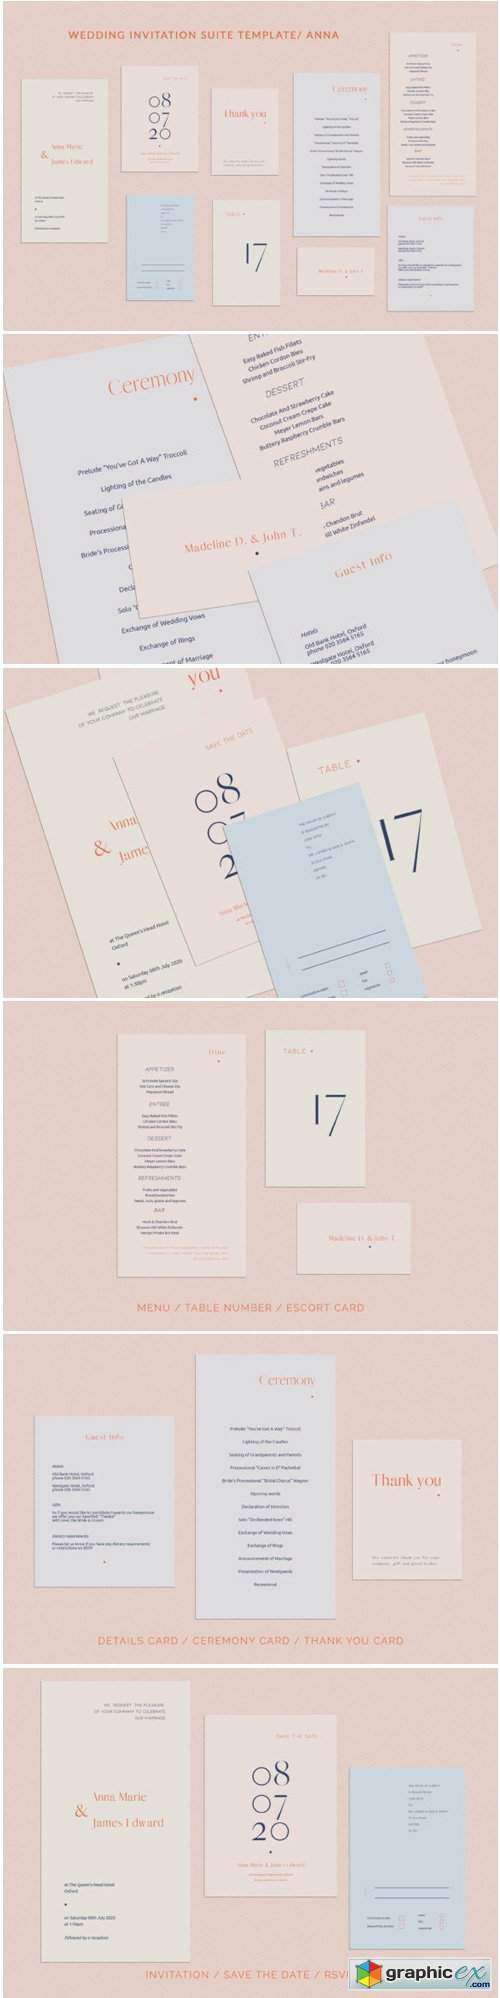 Anna Wedding Invitation Suite